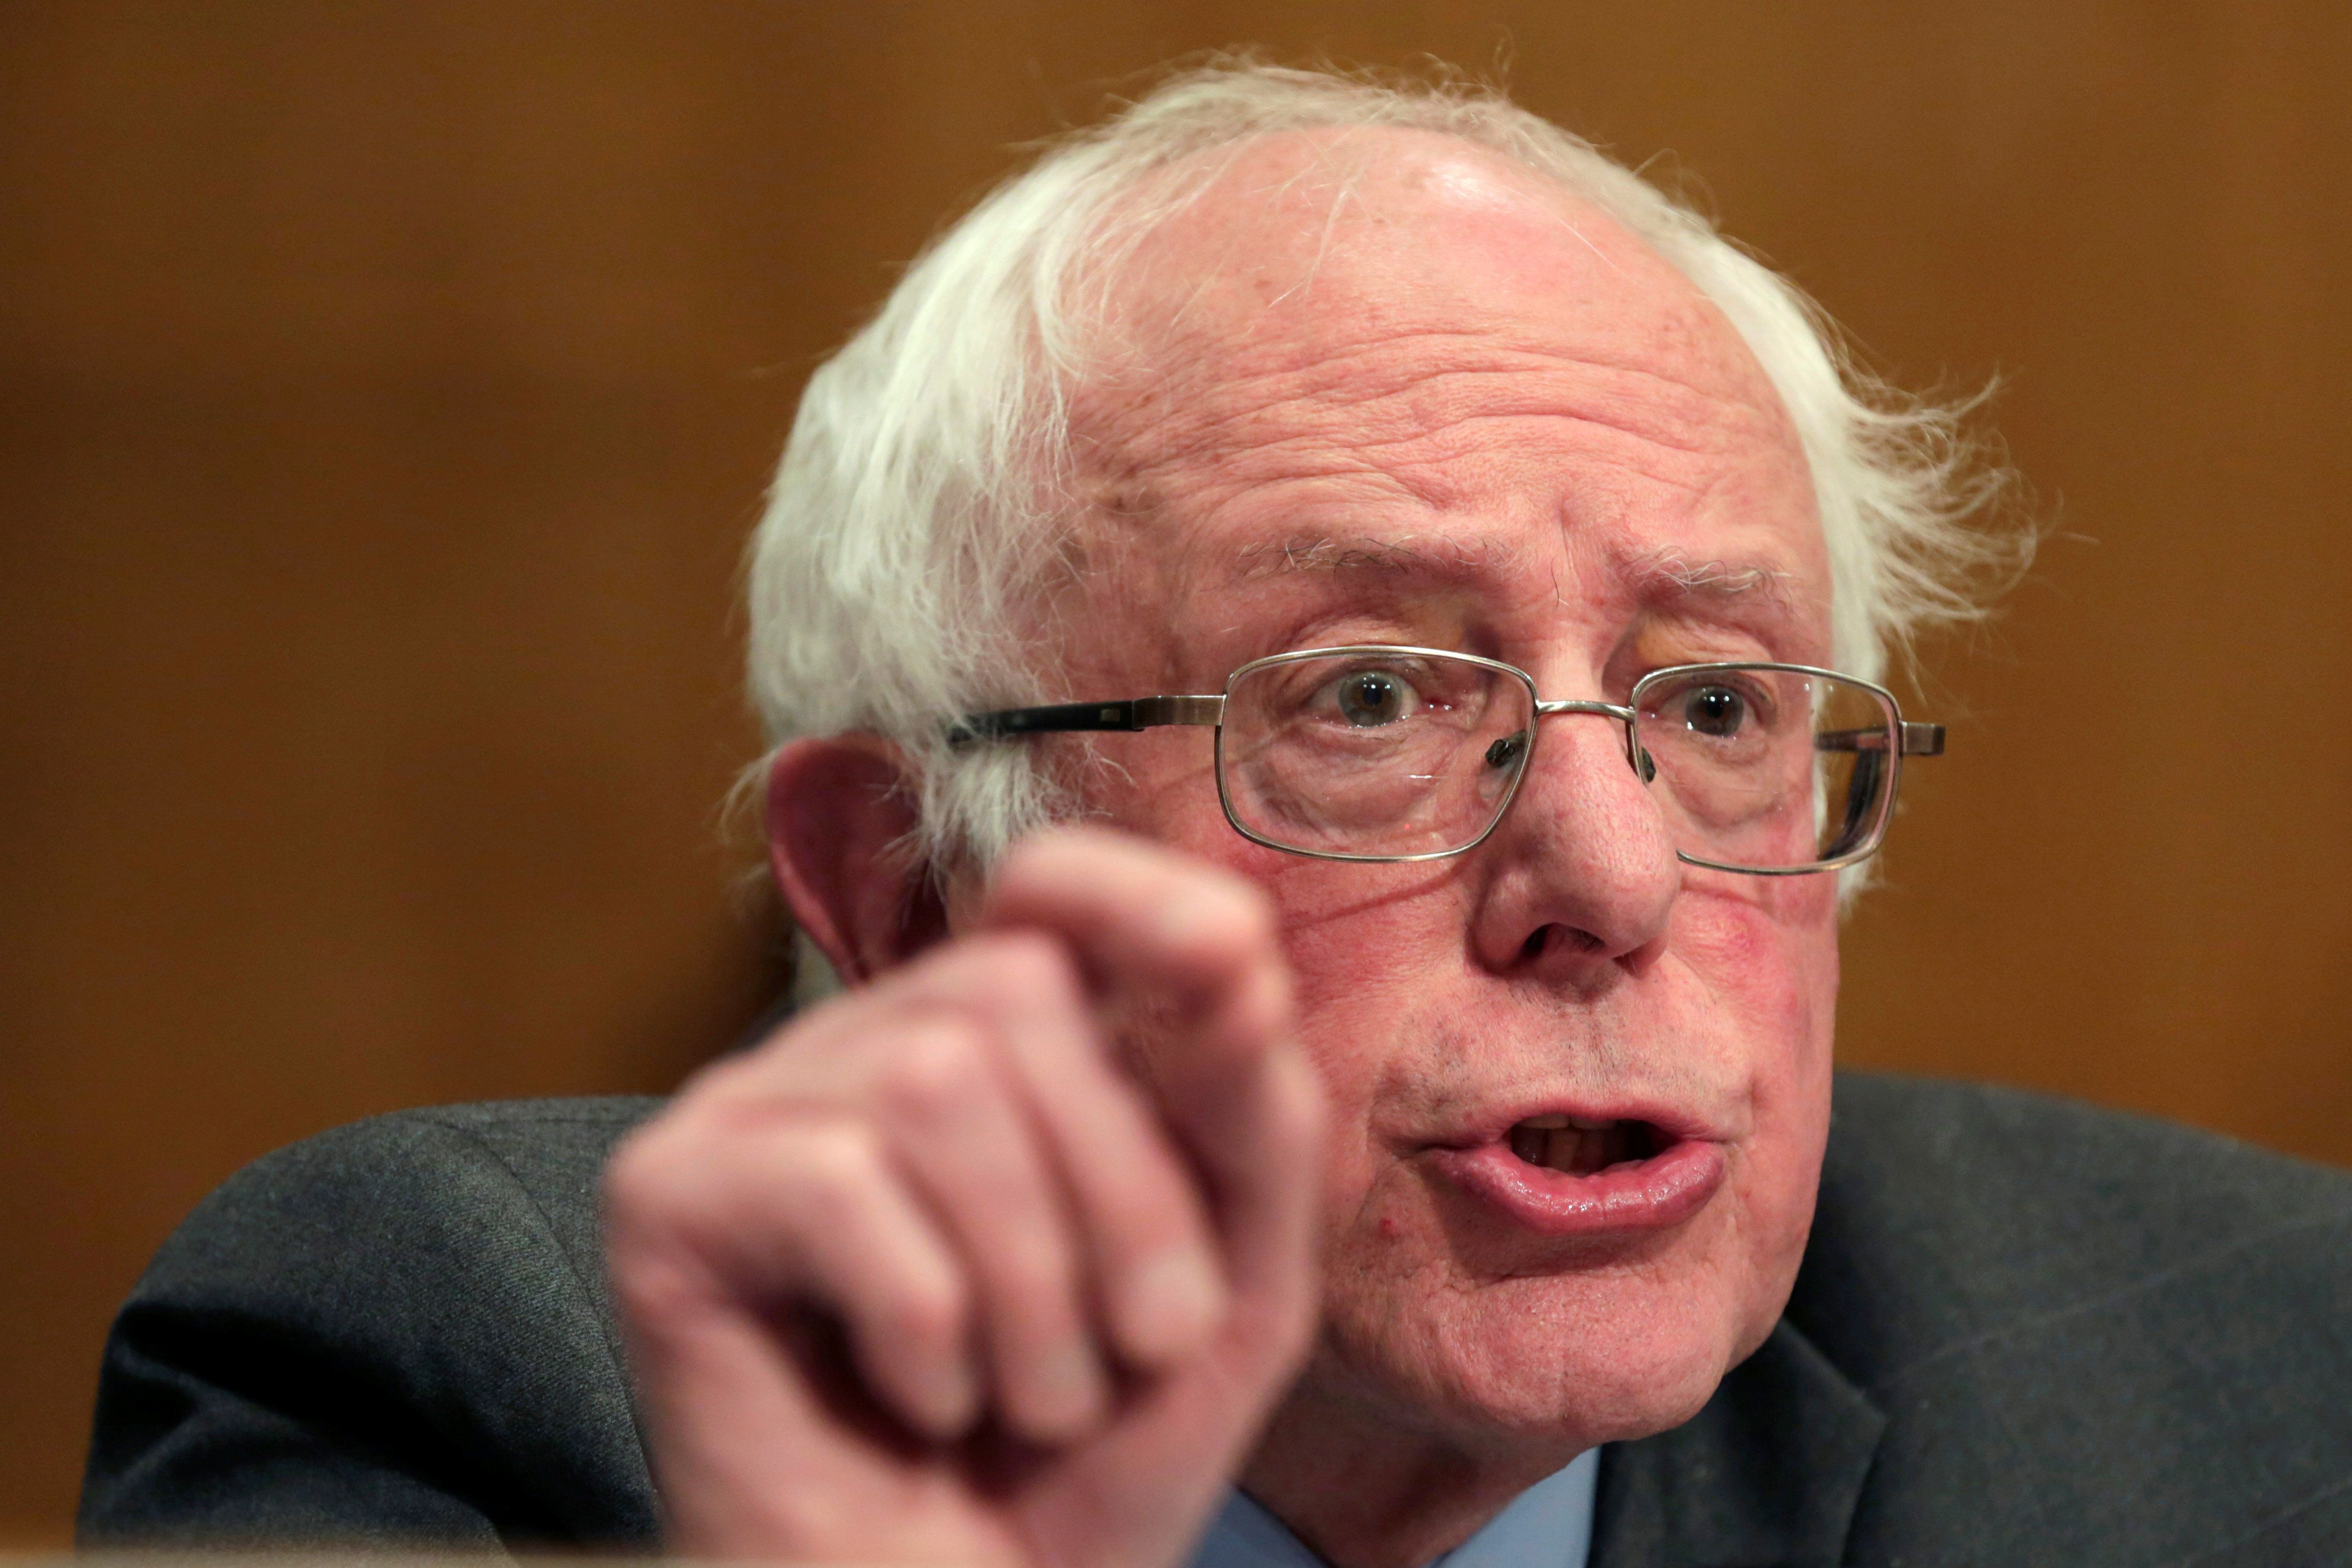 Sen. Bernie Sanders (I-Vt.) questioned statements about Muslims made by Russell Vought, President Donald...